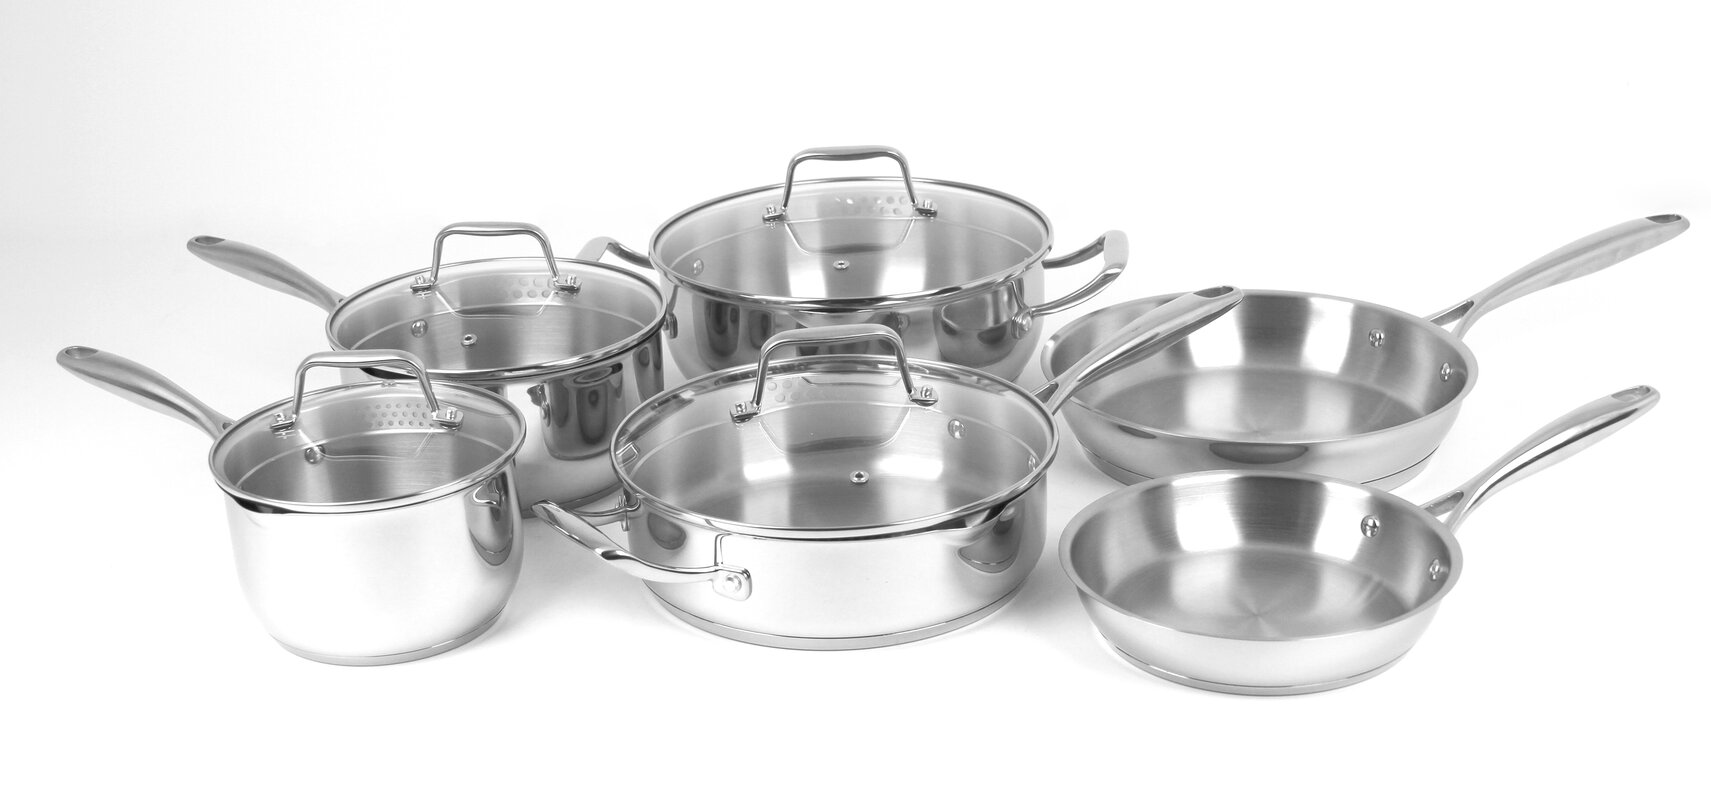 Oneida Premium 10 Piece Stainless Steel Cookware Set & Reviews ...